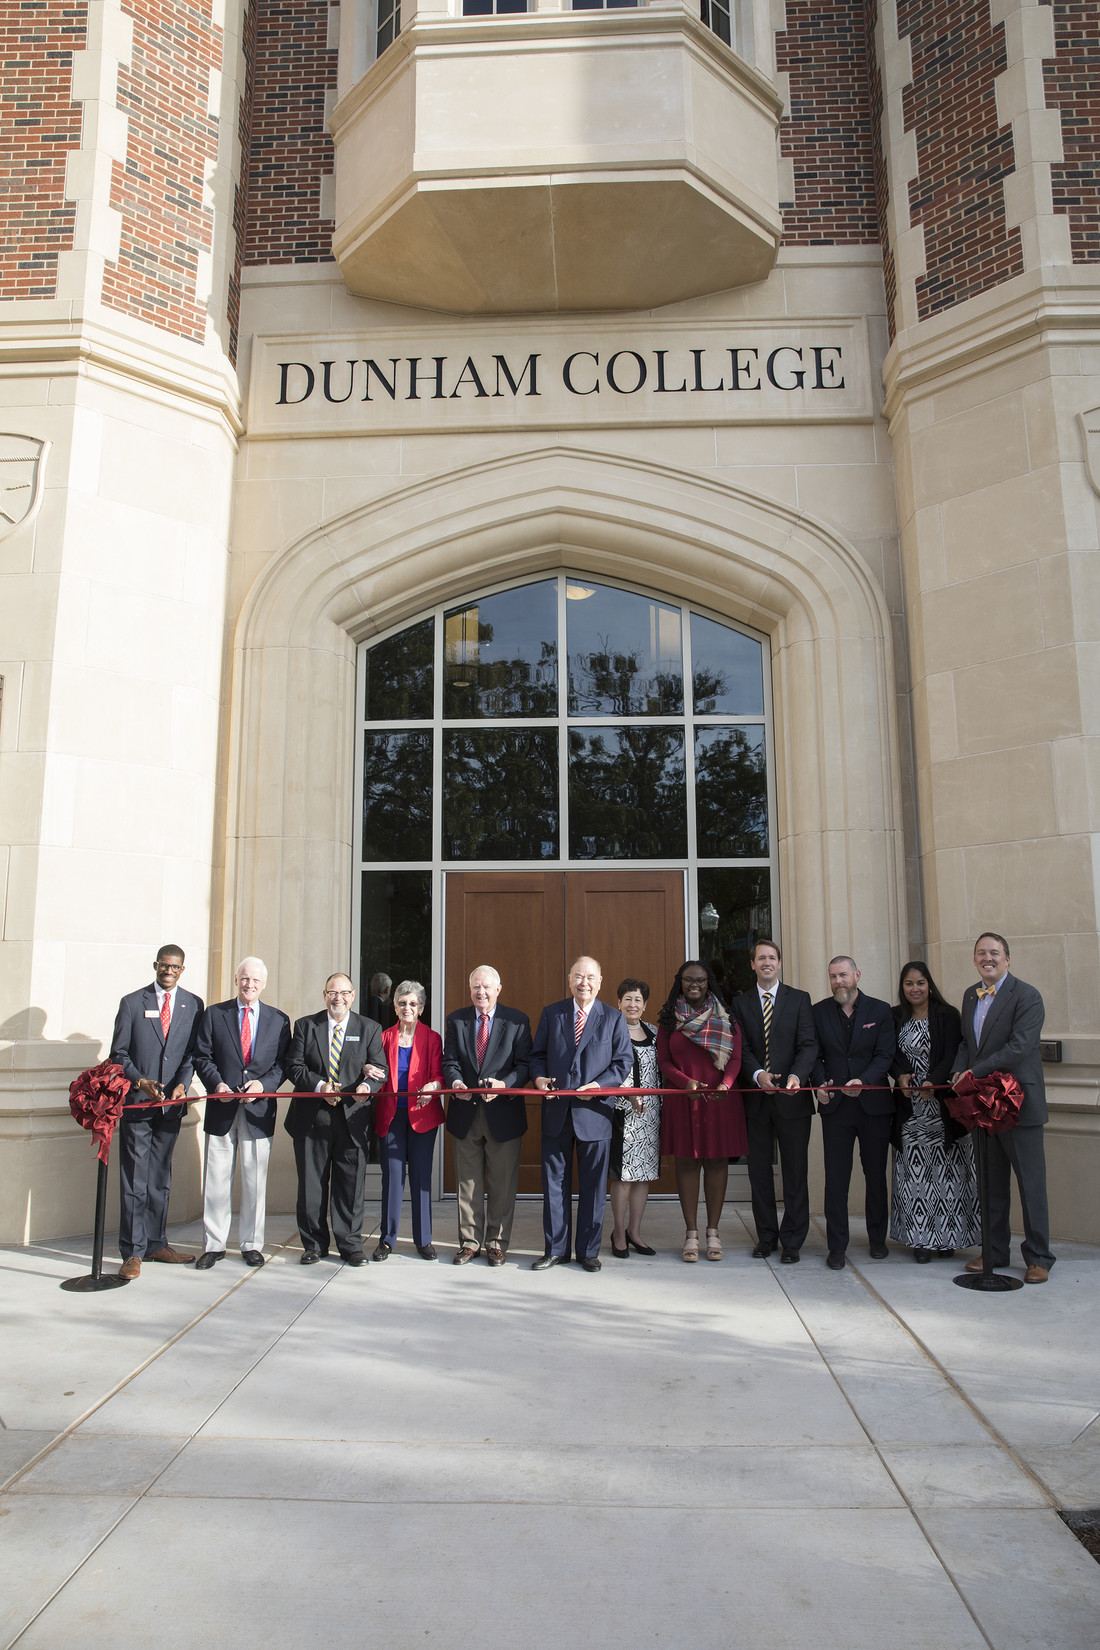 283Dedication-of-Headington-and-Dunham-College-Oct-11-2017.jpg